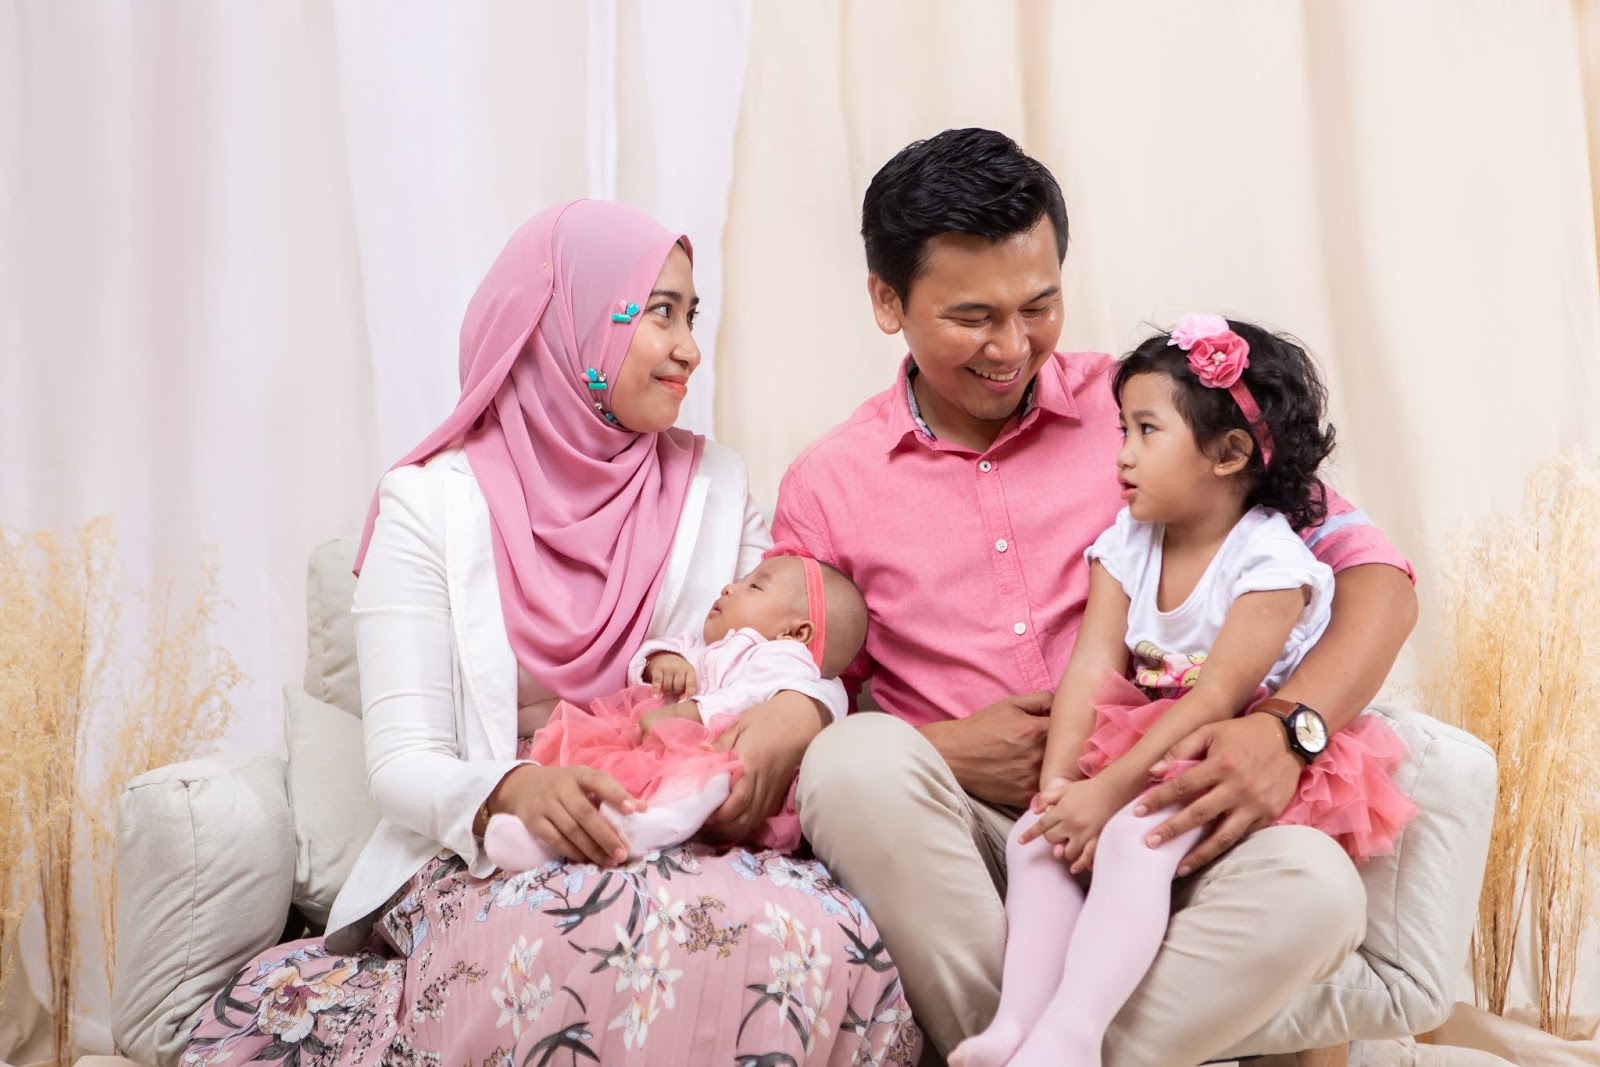 rait photo studio | top photo studio services | Family portraits first choice | malay family photo | indian family photo